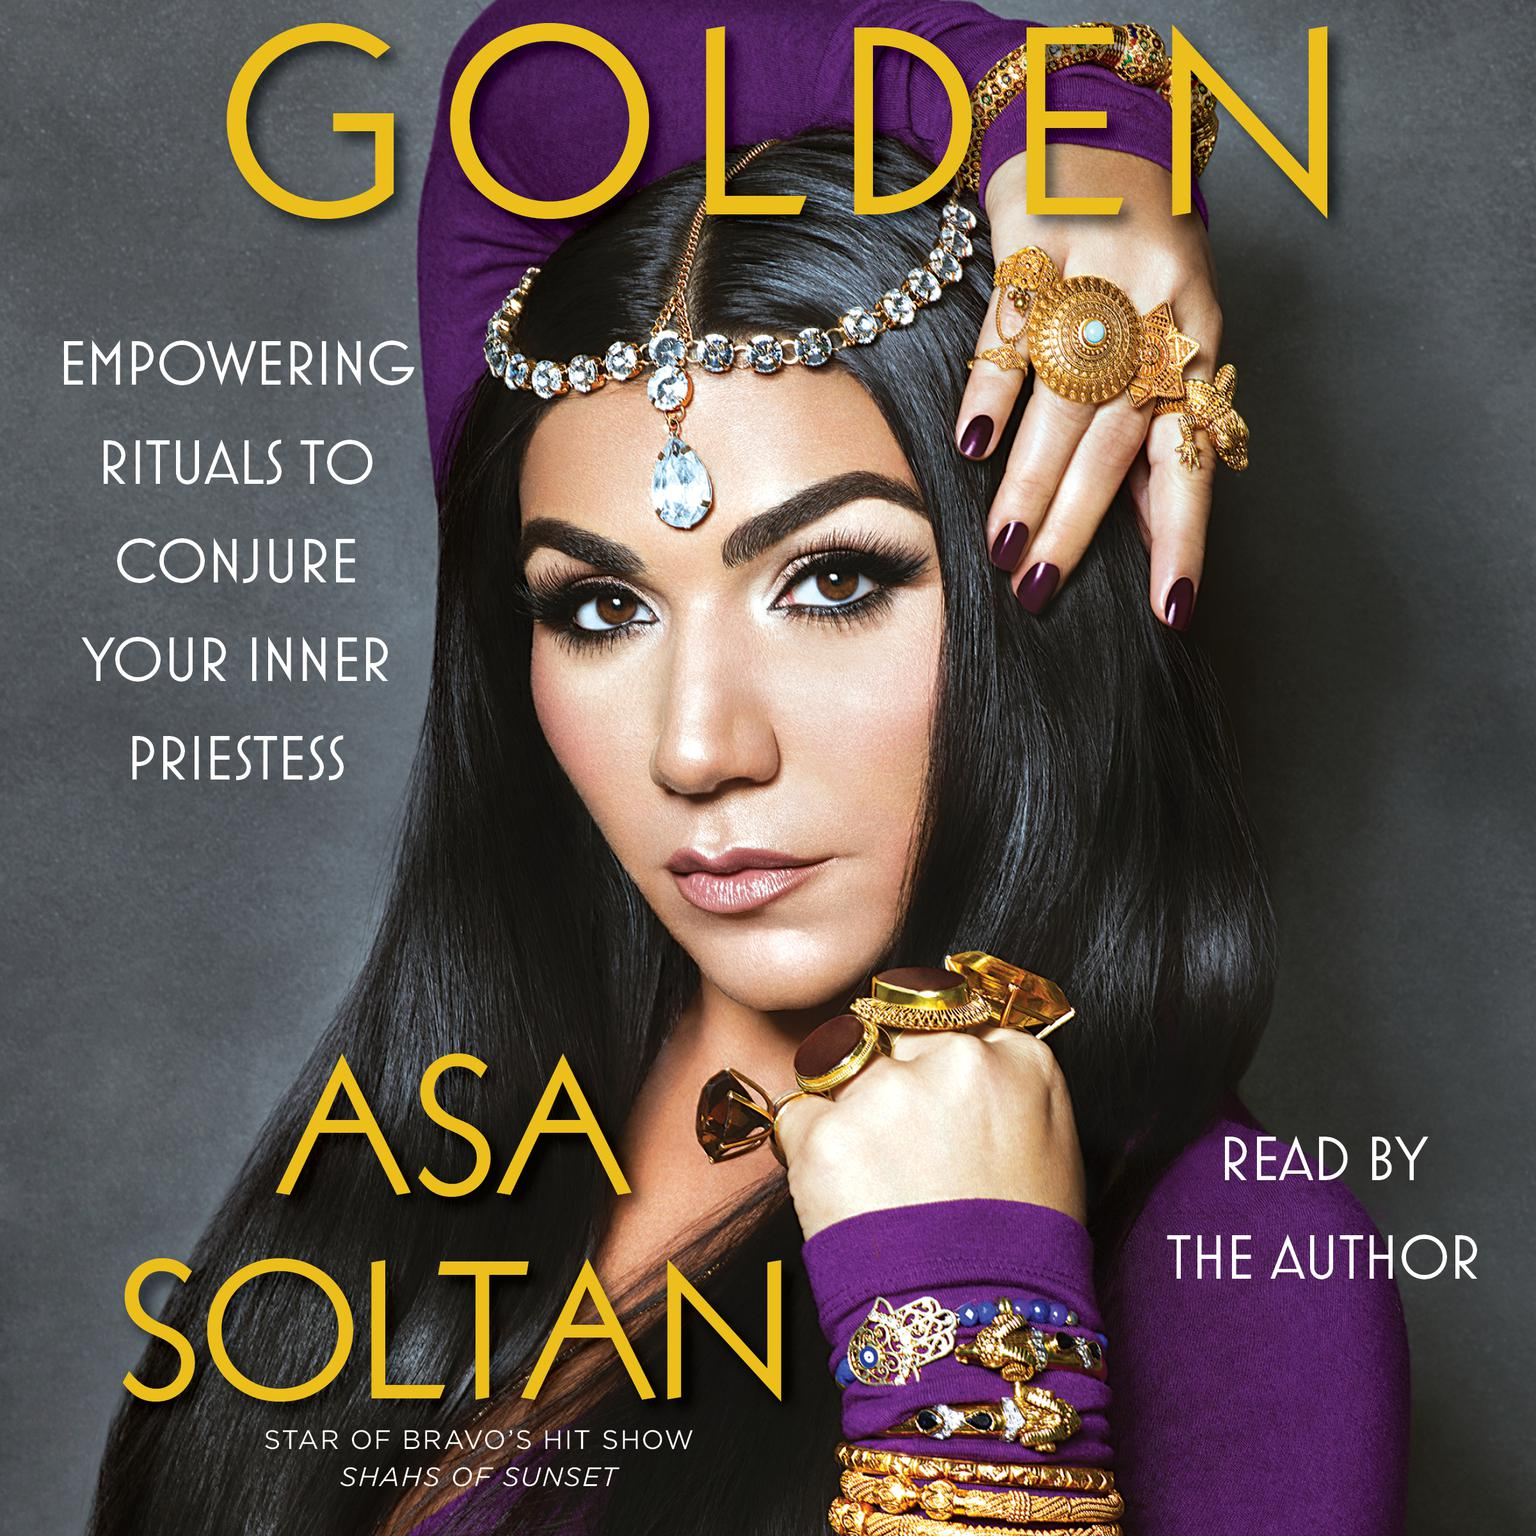 Printable Golden: Empowering Rituals to Conjure Your Inner Priestess Audiobook Cover Art